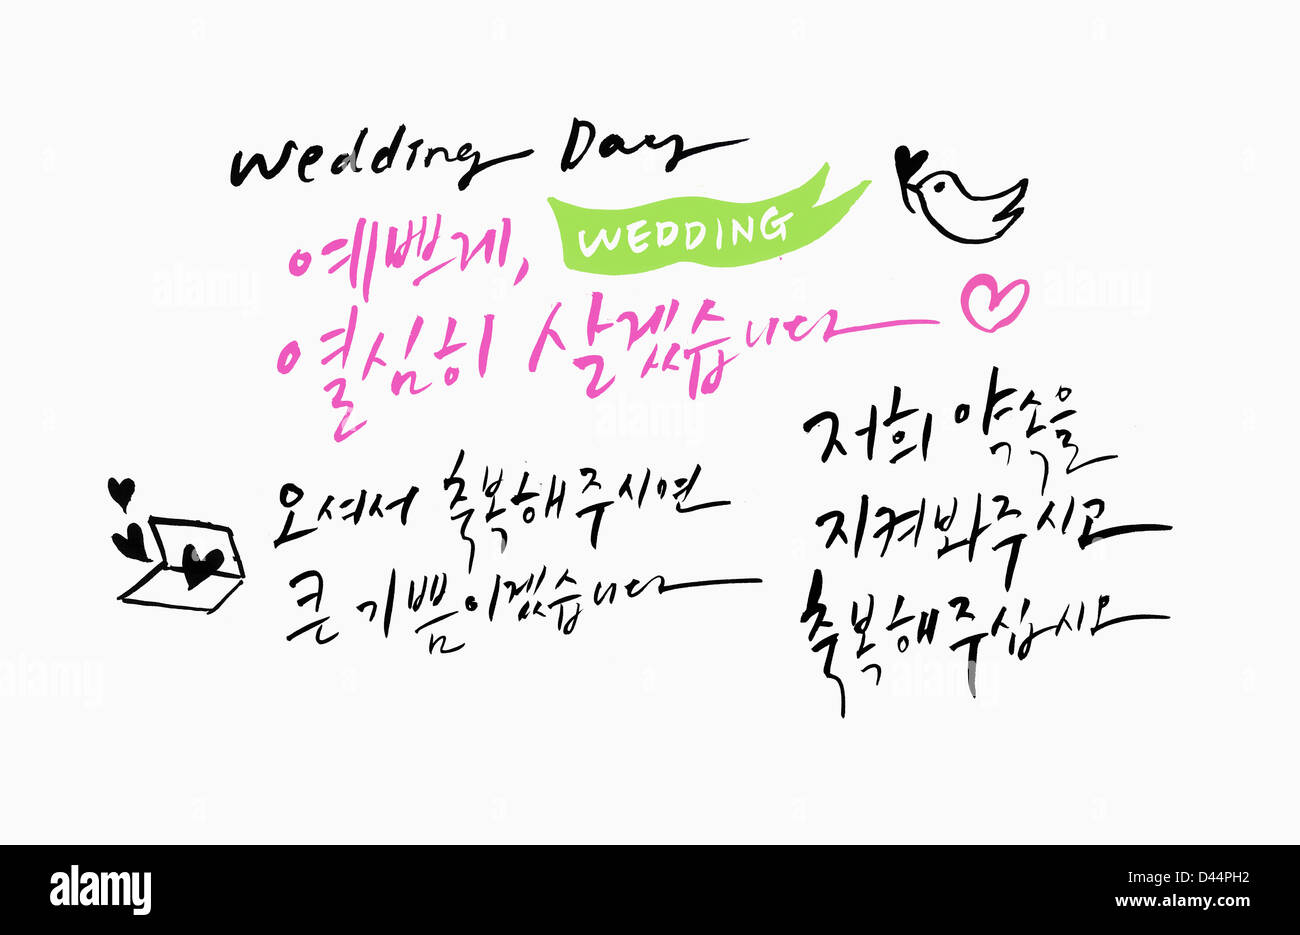 words related to wedding and marriage stock photo 54195262 alamy